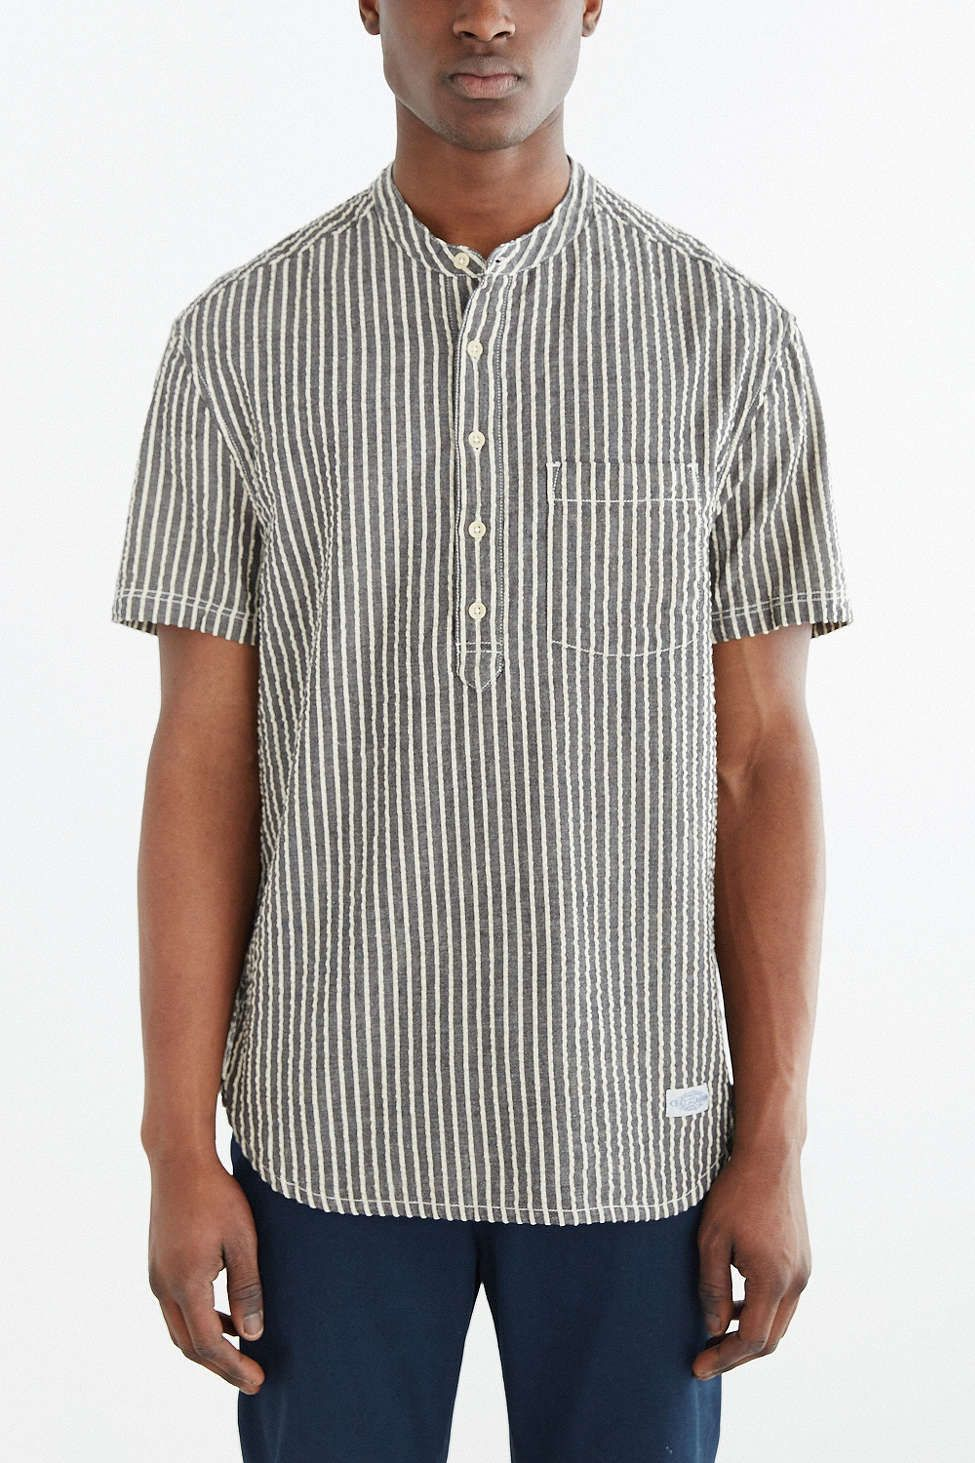 Cpo short sleeve seersucker stripe popover shirt for Mens short sleeve seersucker shirts